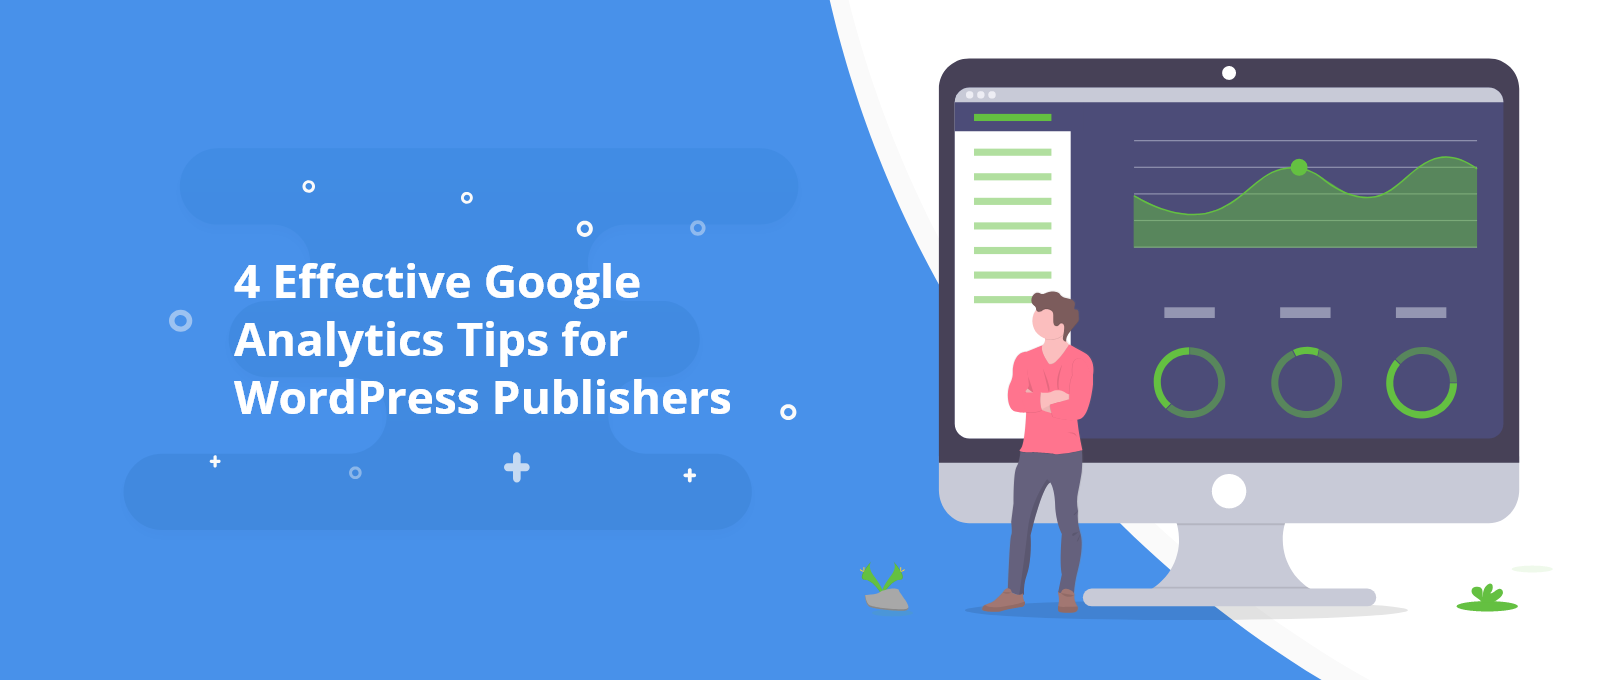 4 Effective Google Analytics Tips for WordPress Publishers@2x